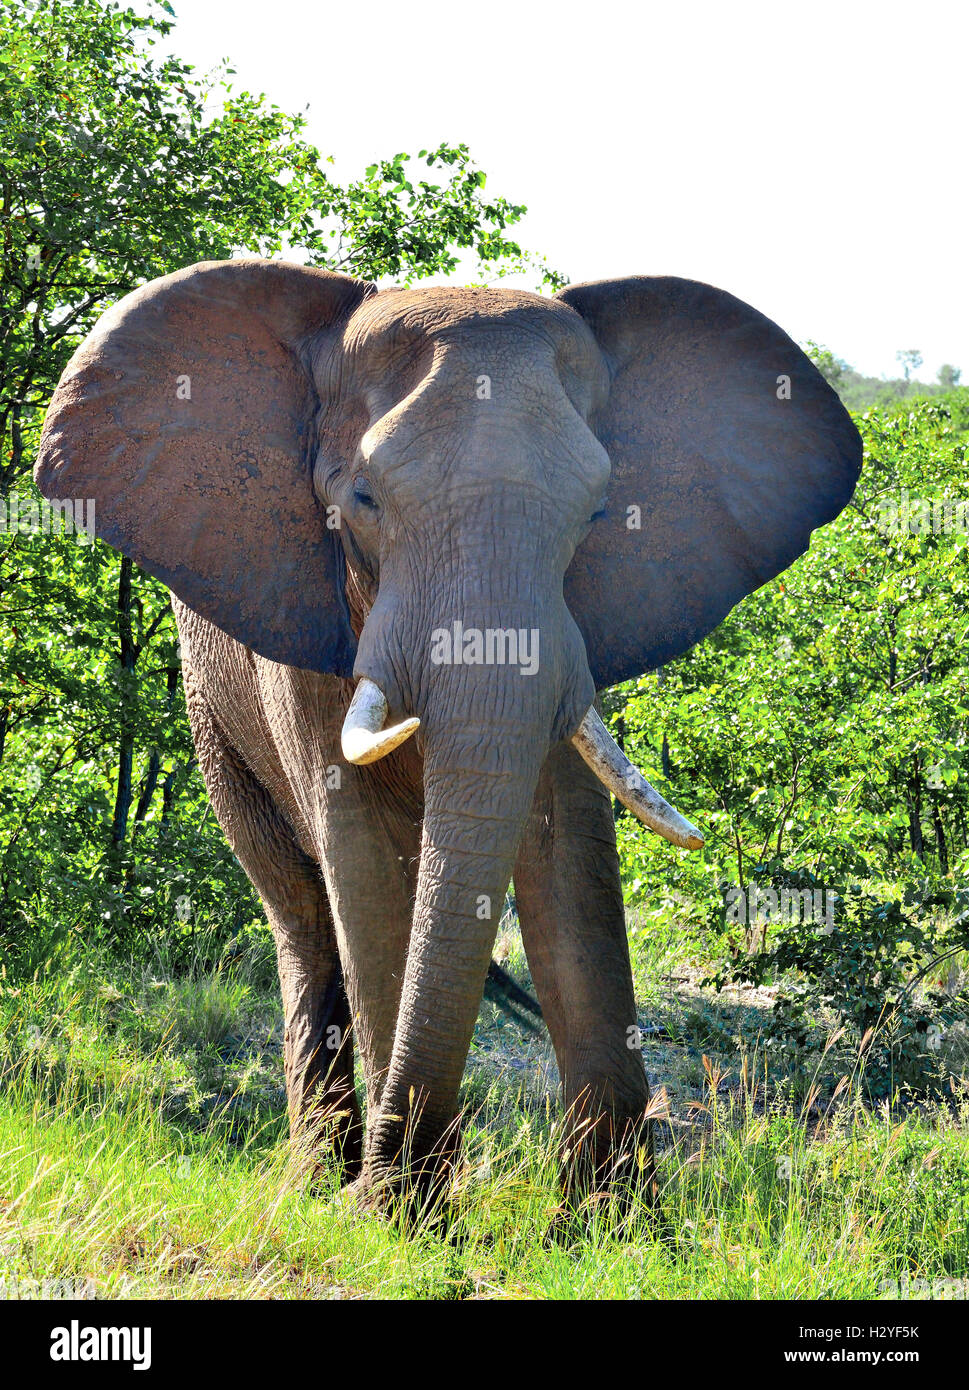 Elephant making a threatening charge by  flapping ears and wildly swaying trunk in the road side bushes near Olifants, - Stock Image